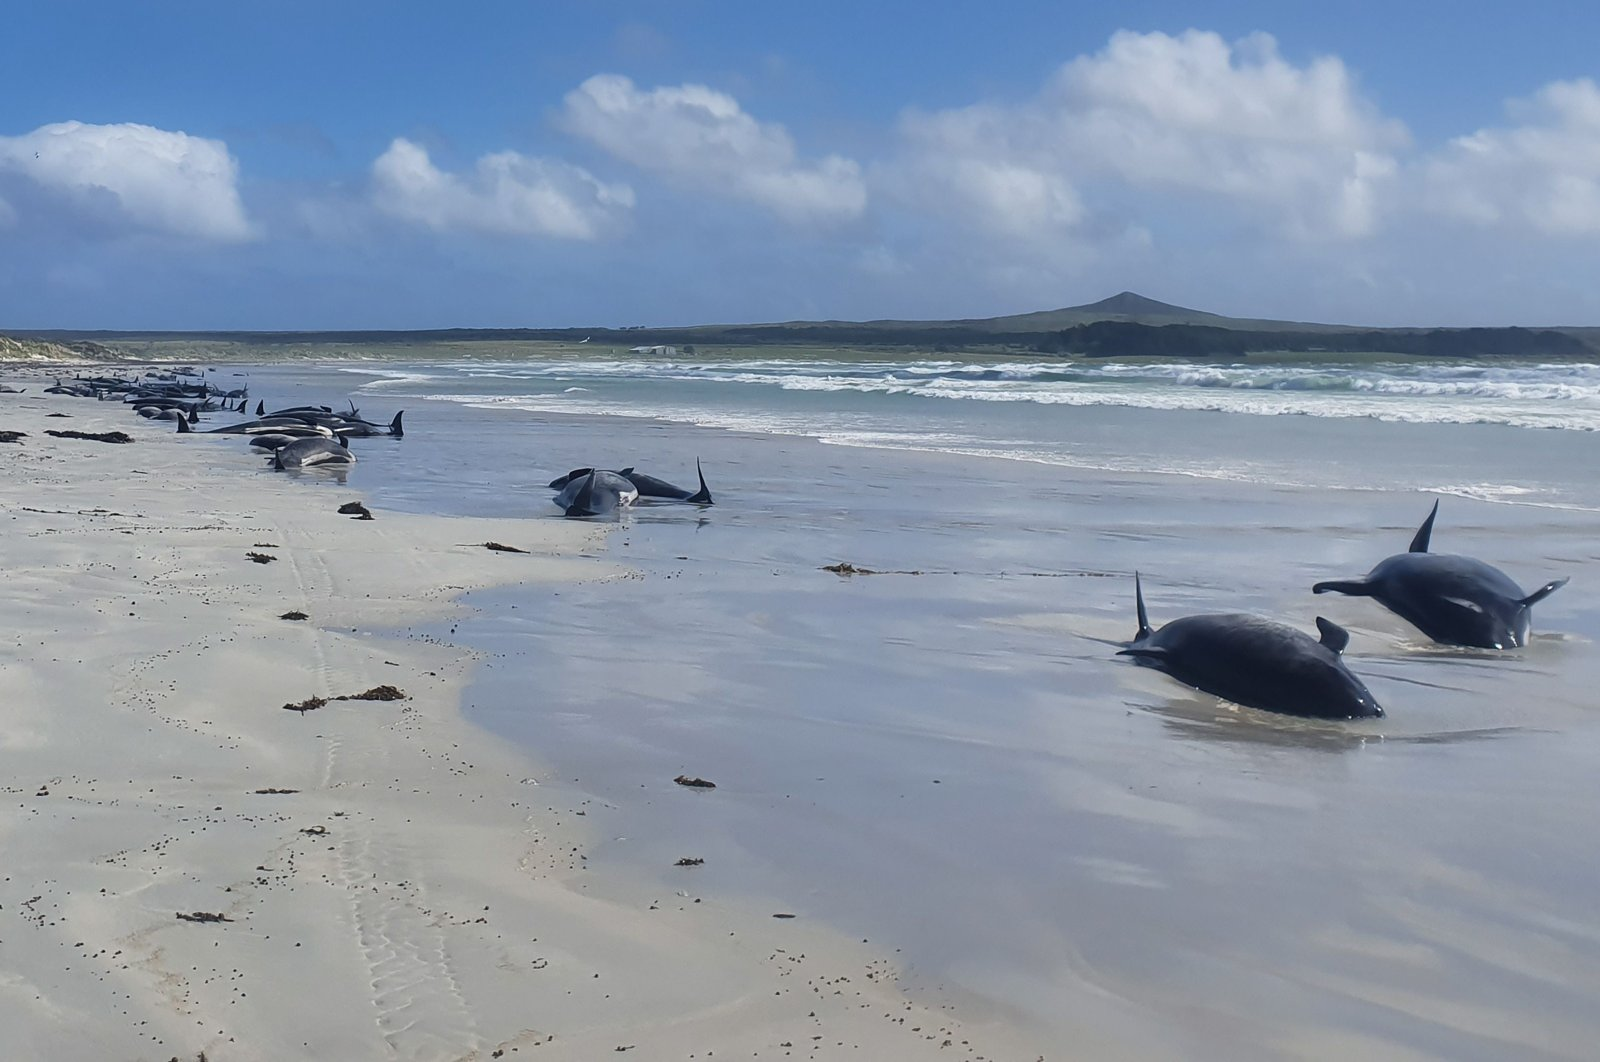 A handout photo taken on 22 November, 2020 and received on 25 November from the New Zealand Department of Conservation (DOC) shows some of the 100 dead pilot whales stranded on New Zealand's remote Chatham Islands. (AFP PHOTO / DEPARTMENT OF CONSERVATION Photo)